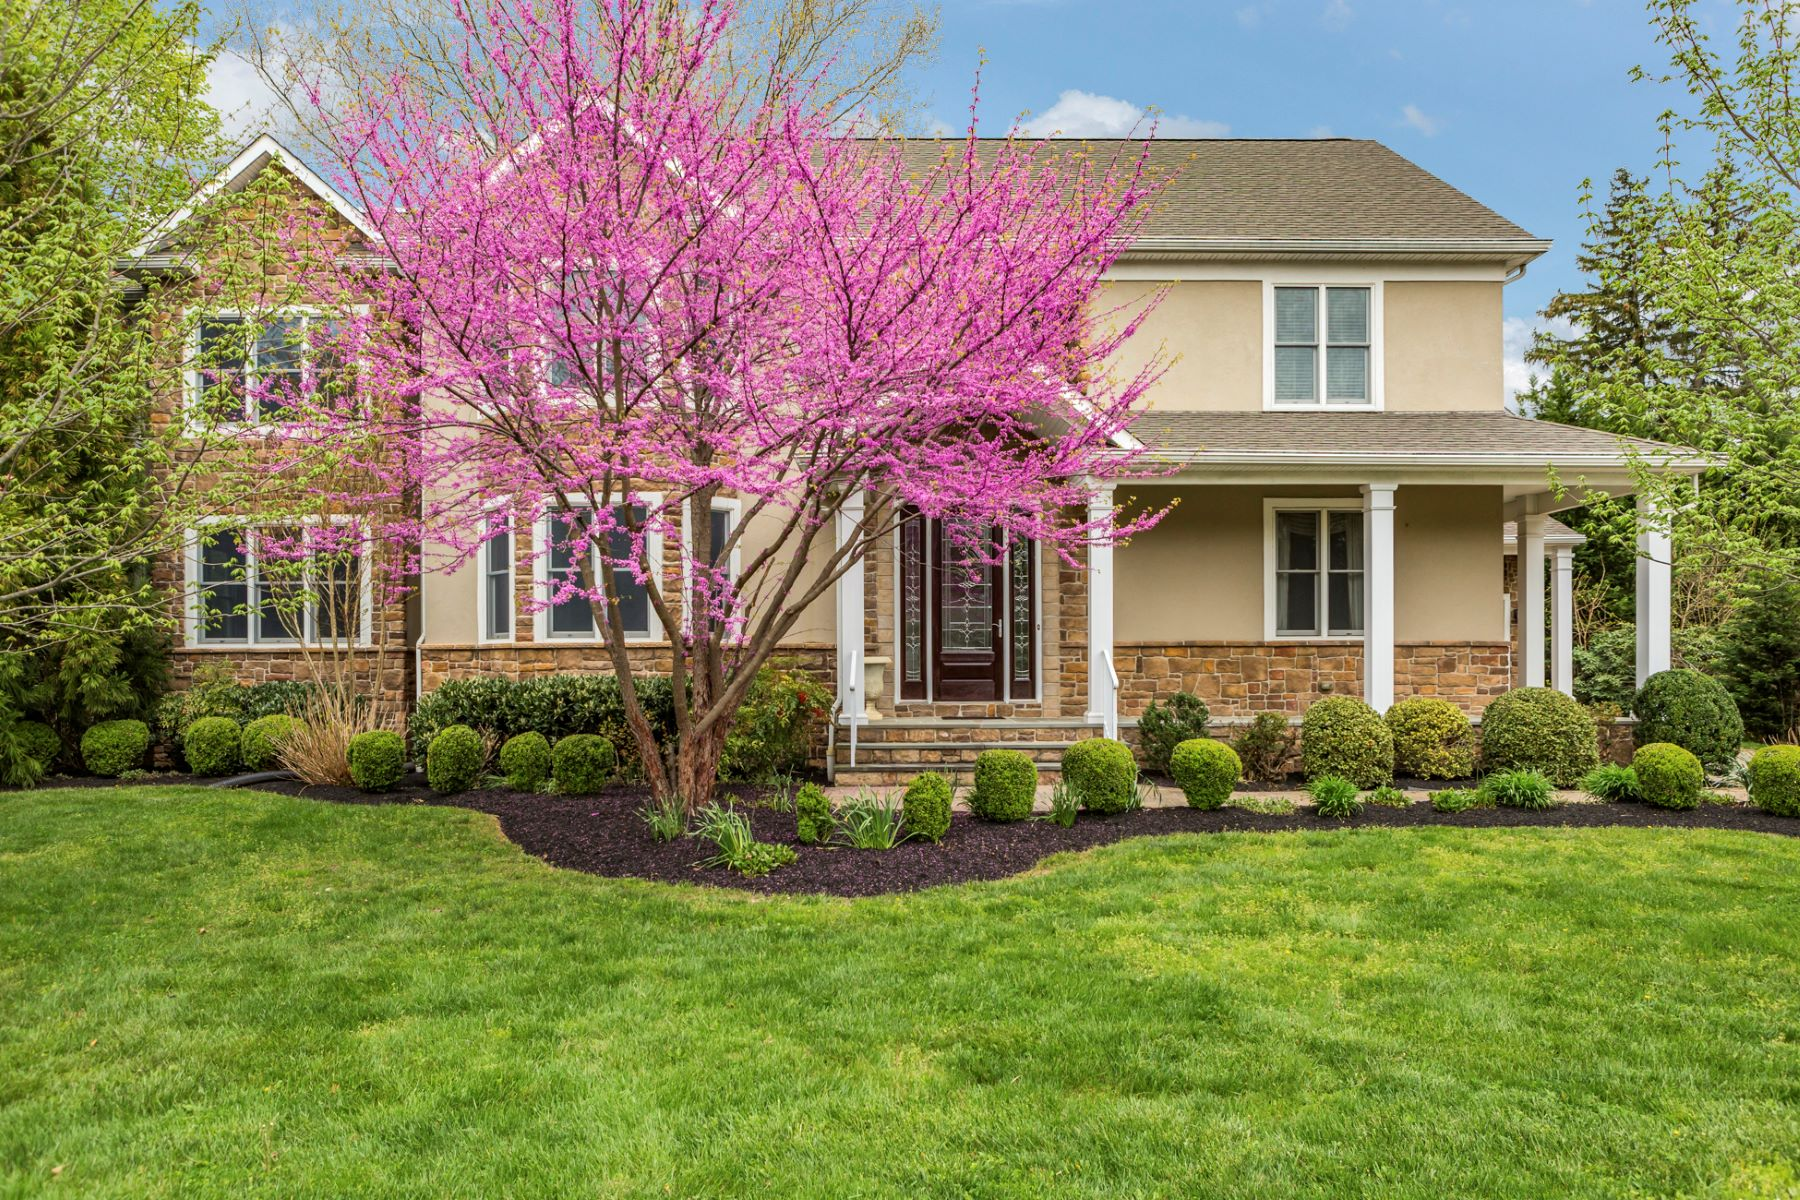 Single Family Home for Sale at Elegance and Comfort - Lawrence Township 2 Shelmut Lane Lawrenceville, 08648 United States